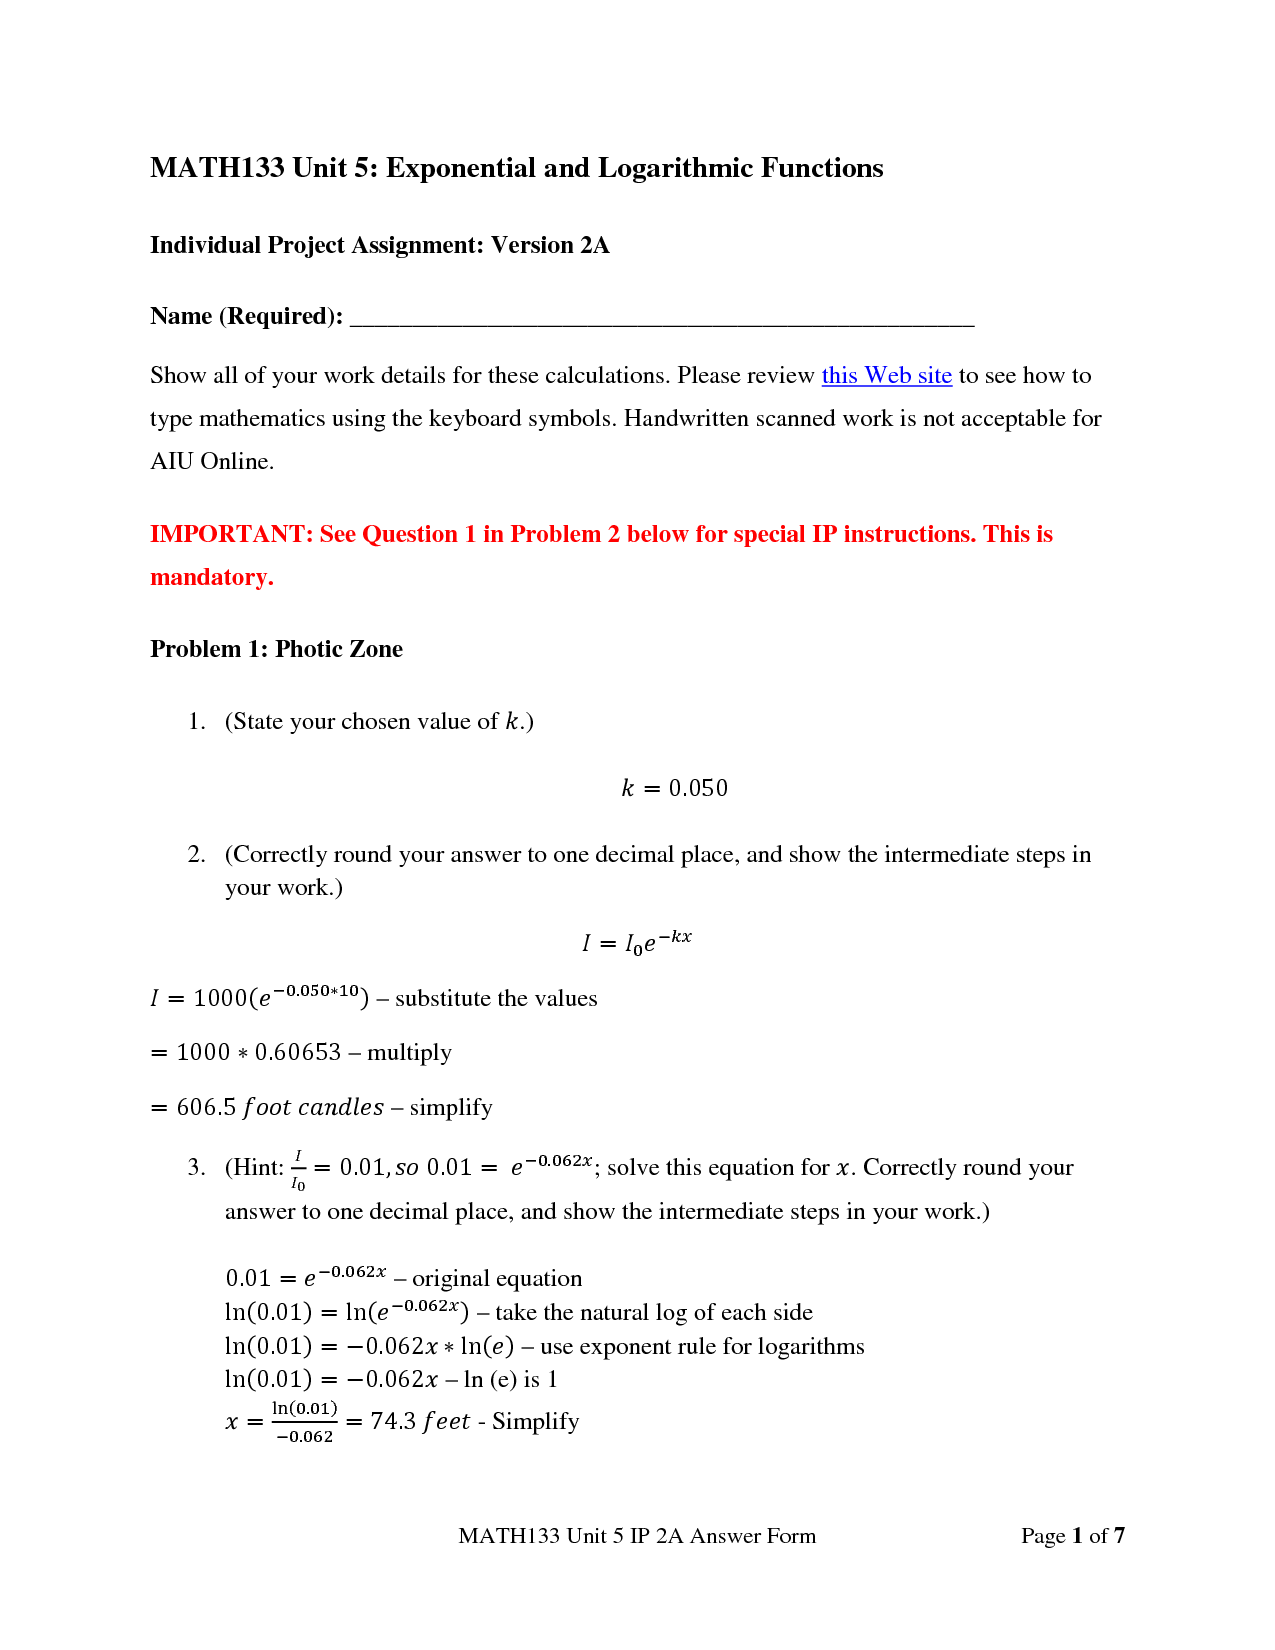 MATH133 Unit 1 Individual Project A / (AIU)